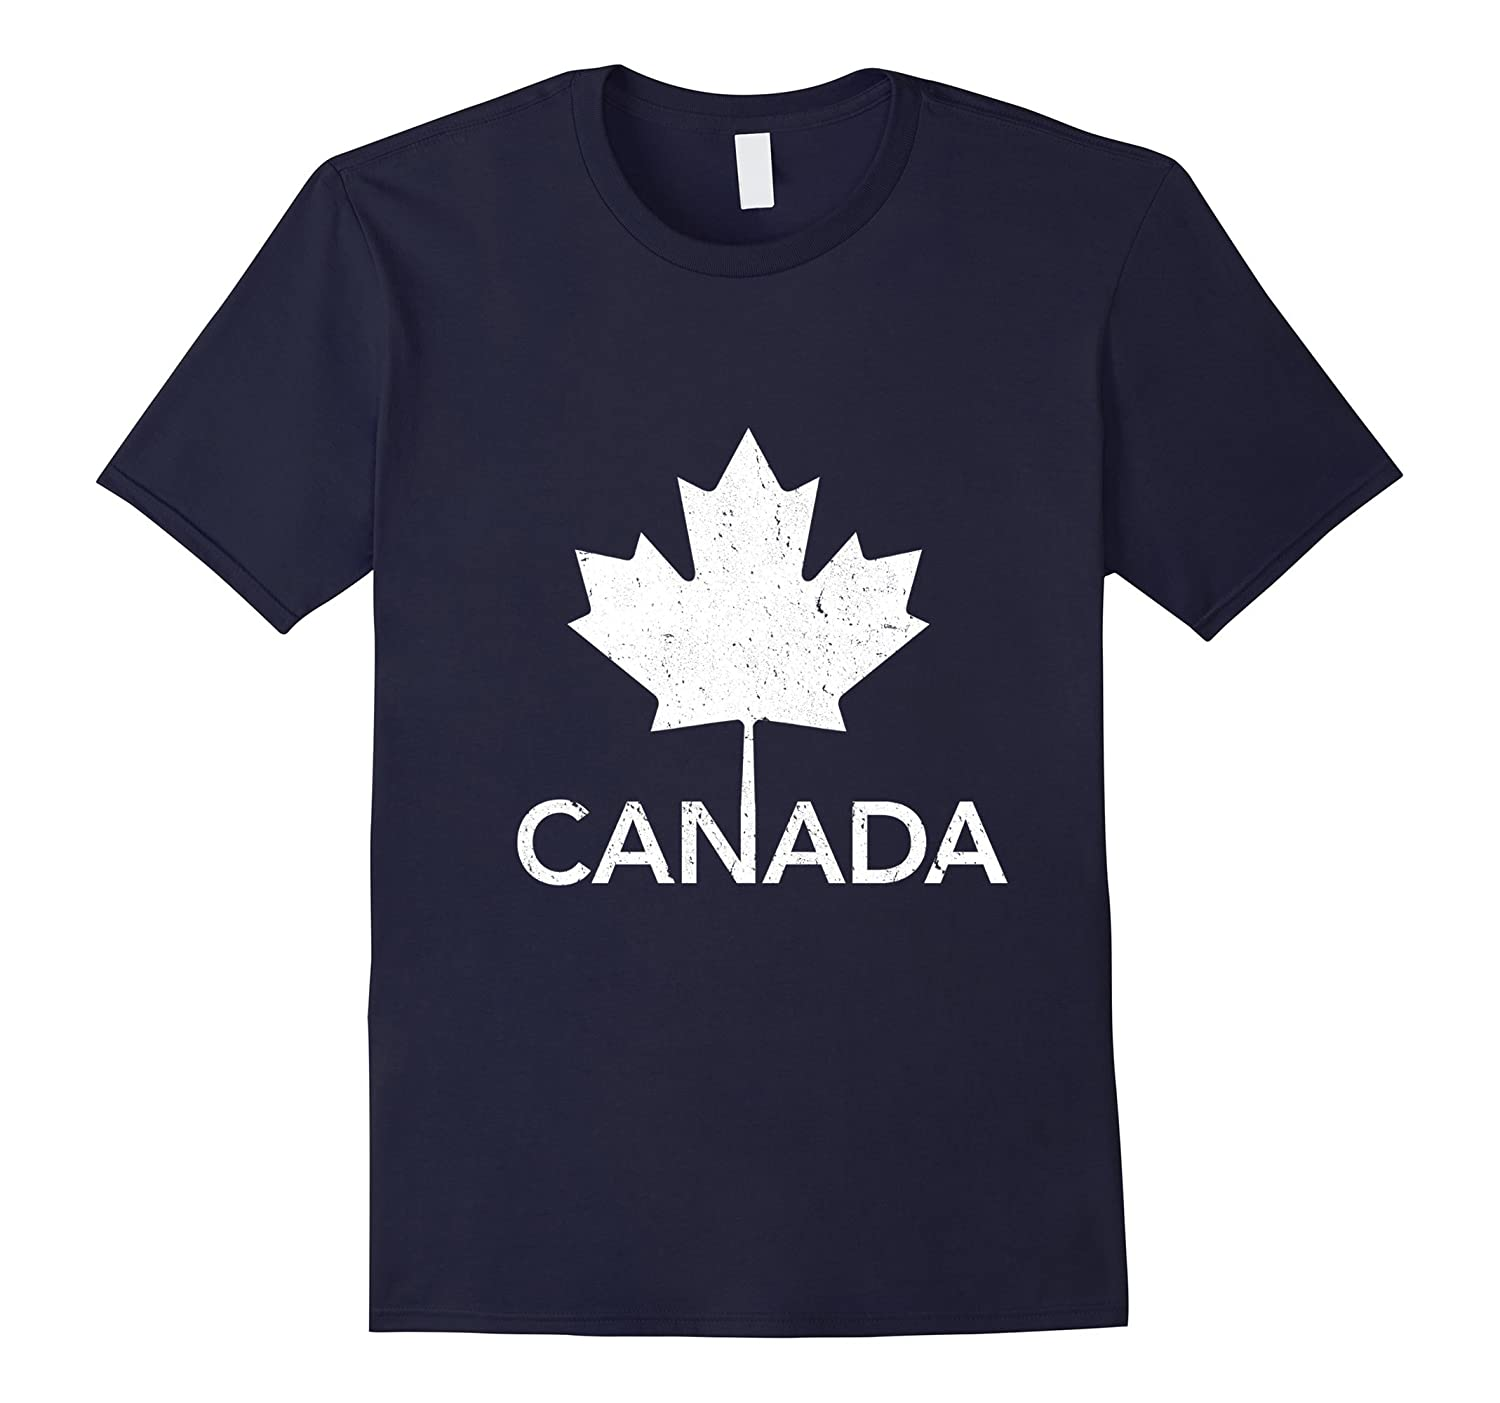 Flag of Canada Vintage T-Shirt Canada Day Tee Shirt-ah my shirt one gift